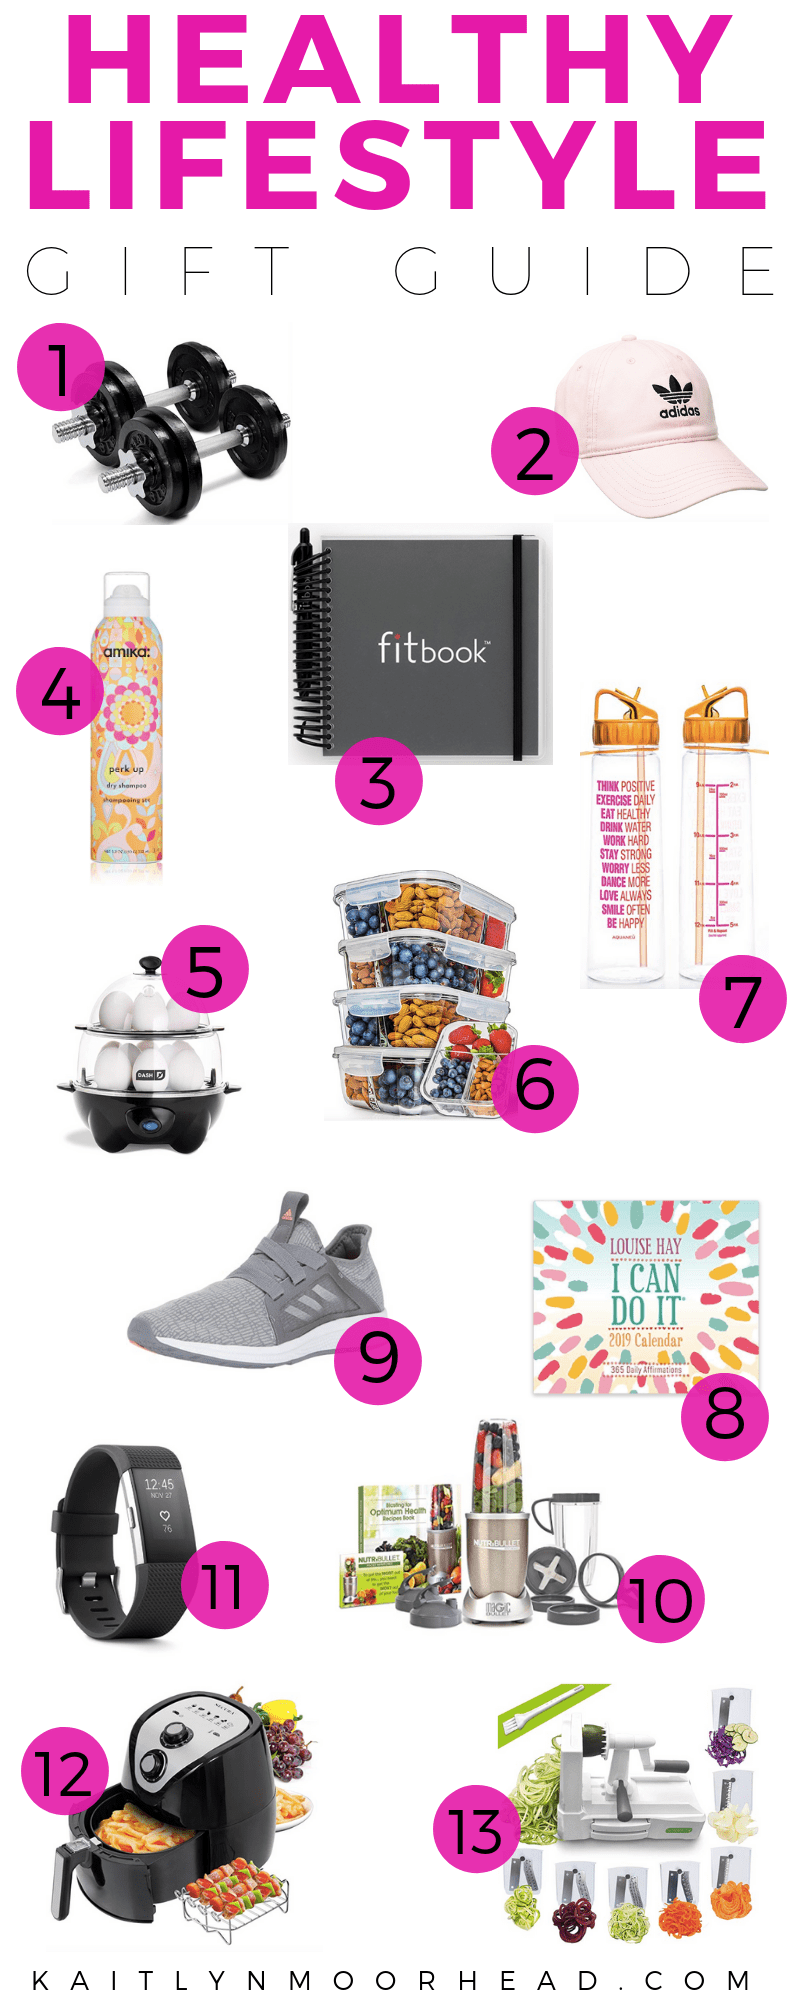 Gift Guide: For the Girl Who Lives a Healthy Lifestyle | Gift Guide for Her, Holiday Gift Guide for Her, Gift guide for girlfriend, gift guide, for mom, gift guide for sister, gift guide for a healthy lifestyle, holiday gift guide 2018, holiday gift guide fitness, holiday gift ideas for women, holiday gift ideas for girlfriend, gift ideas for wife, gift ideas for girlfriend, fitness gift guide, healthy lifestyle gift guide, fitness gifts for women #giftideas #giftguide #holidaygifts #holidaygiftguide